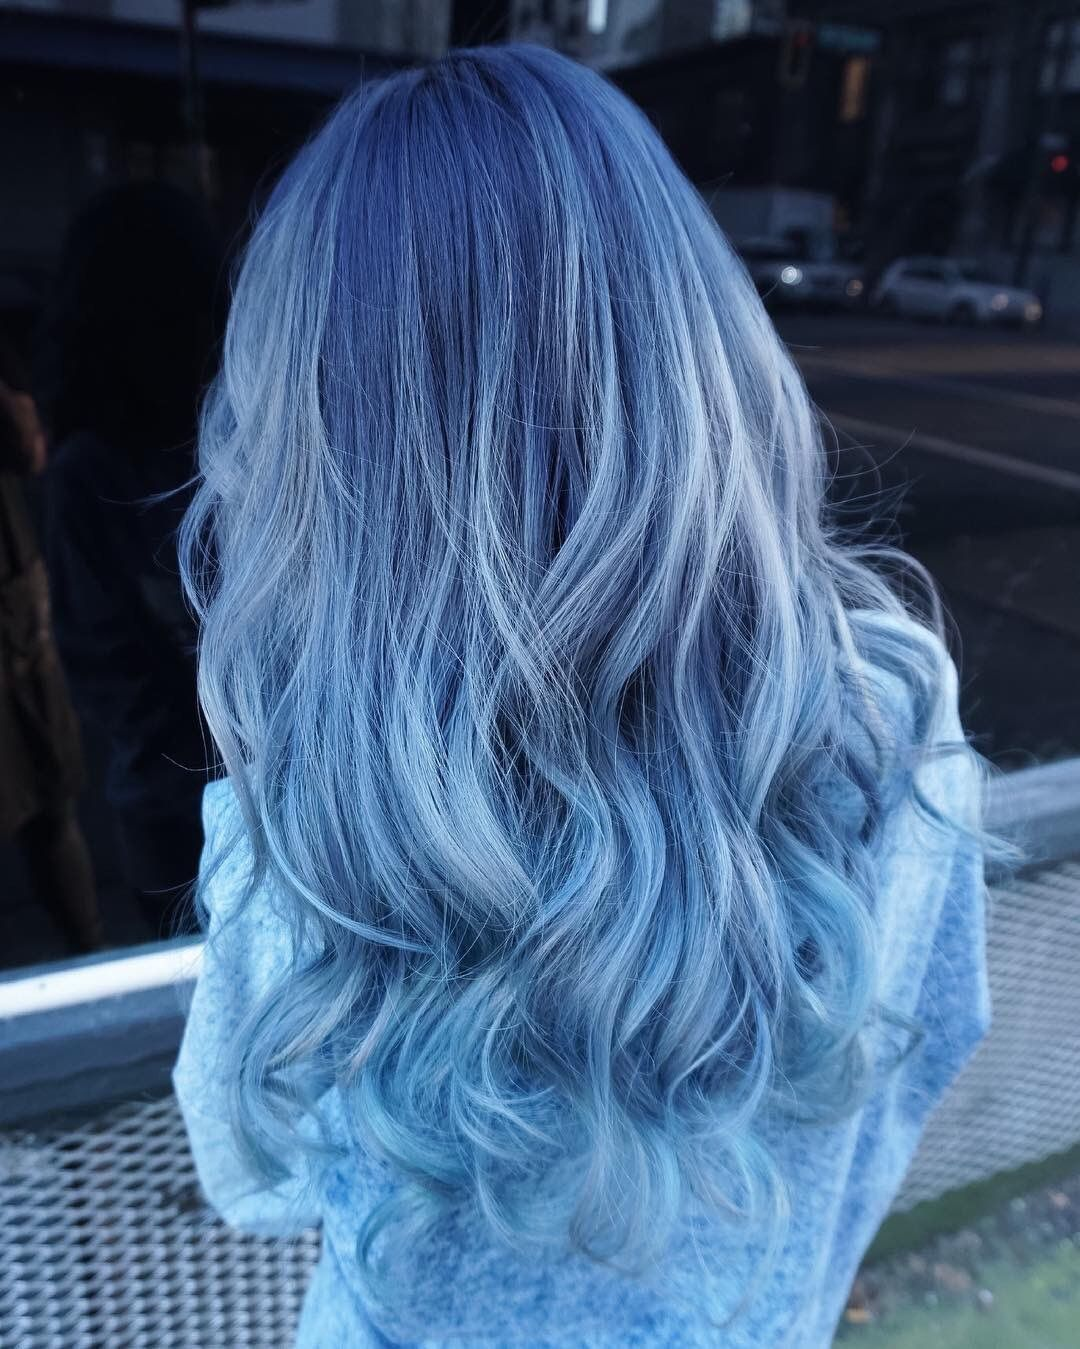 Pin by lulamulala on hair pinterest hair dye and blue hair